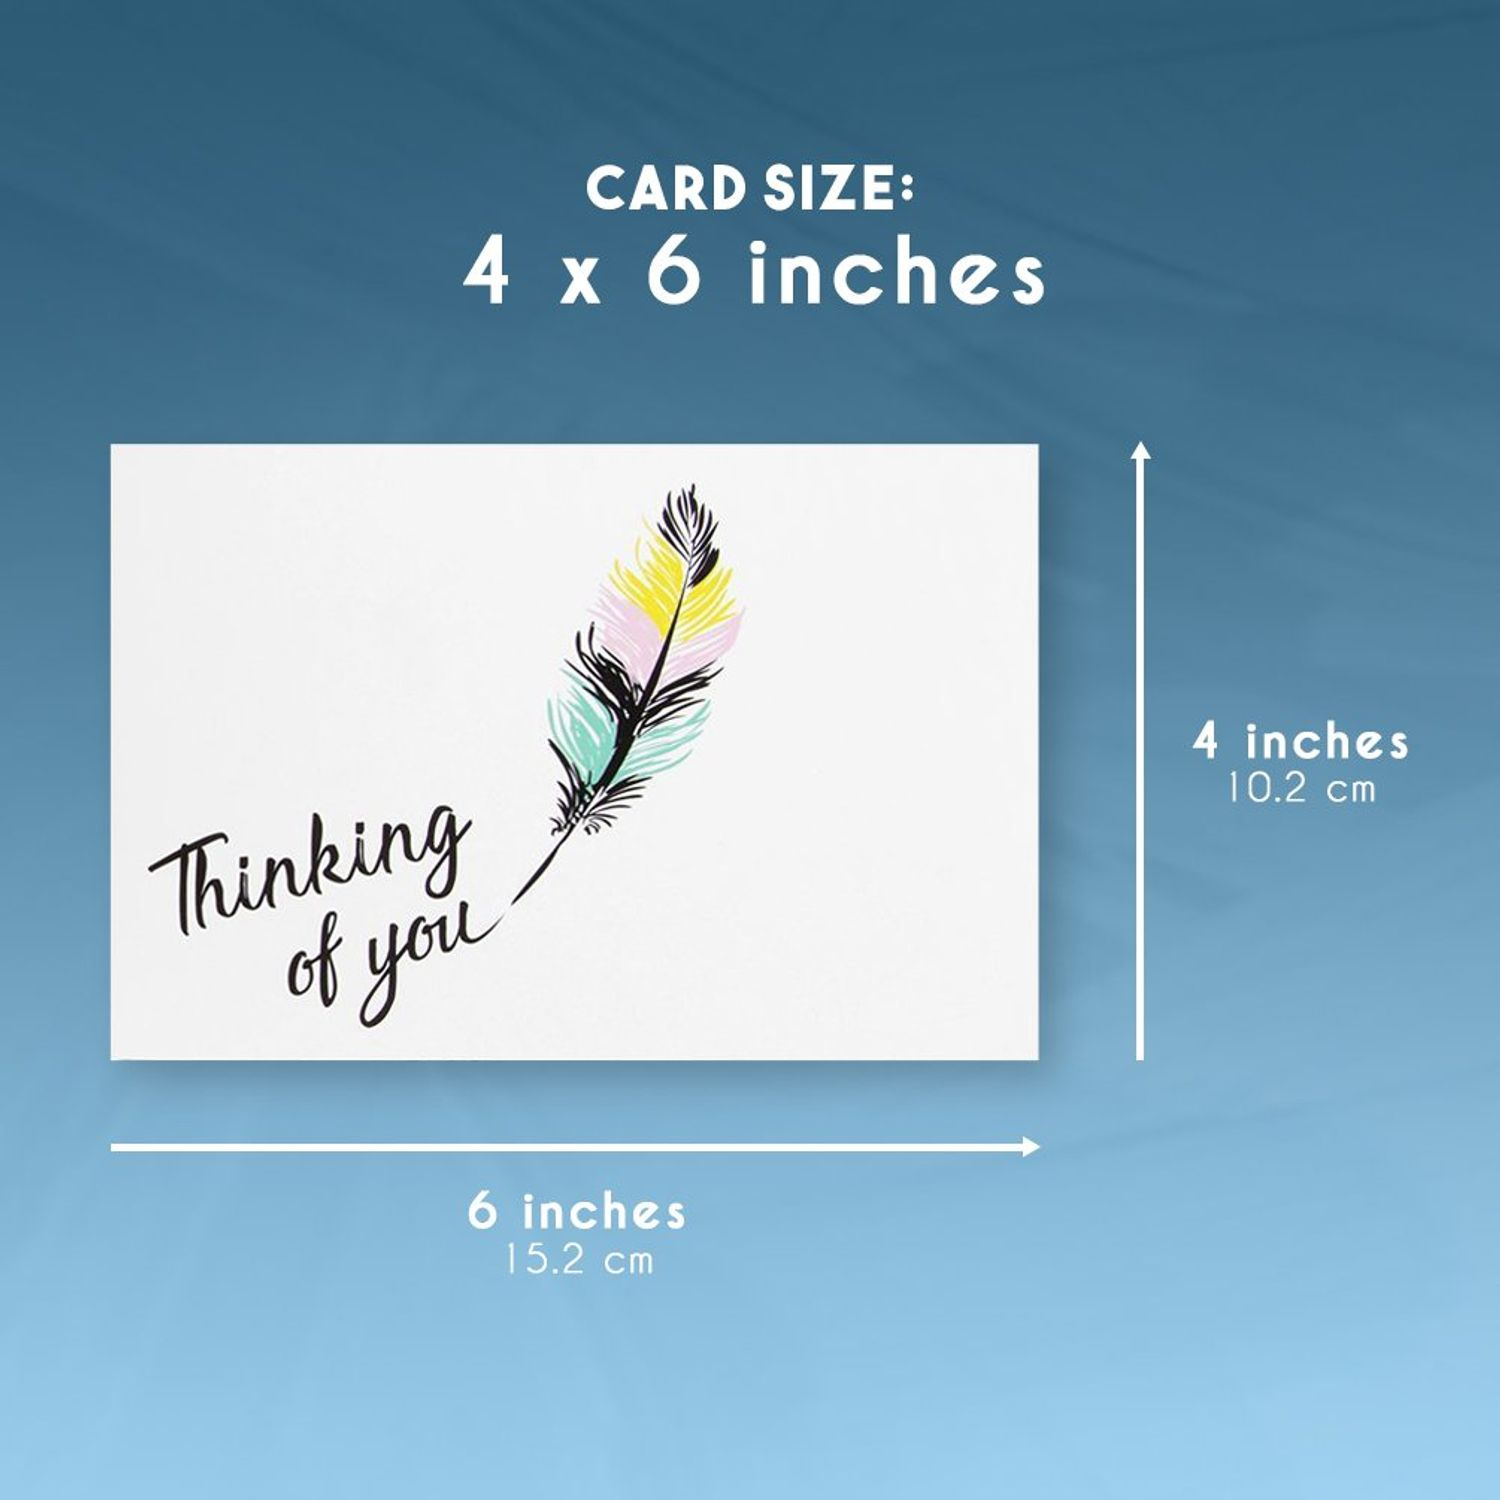 4 x 6 Inches Includes 48 Greeting Cards and Envelopes 48-Pack Thinking of You Note Cards Blank on the Inside Colorful Feather Design